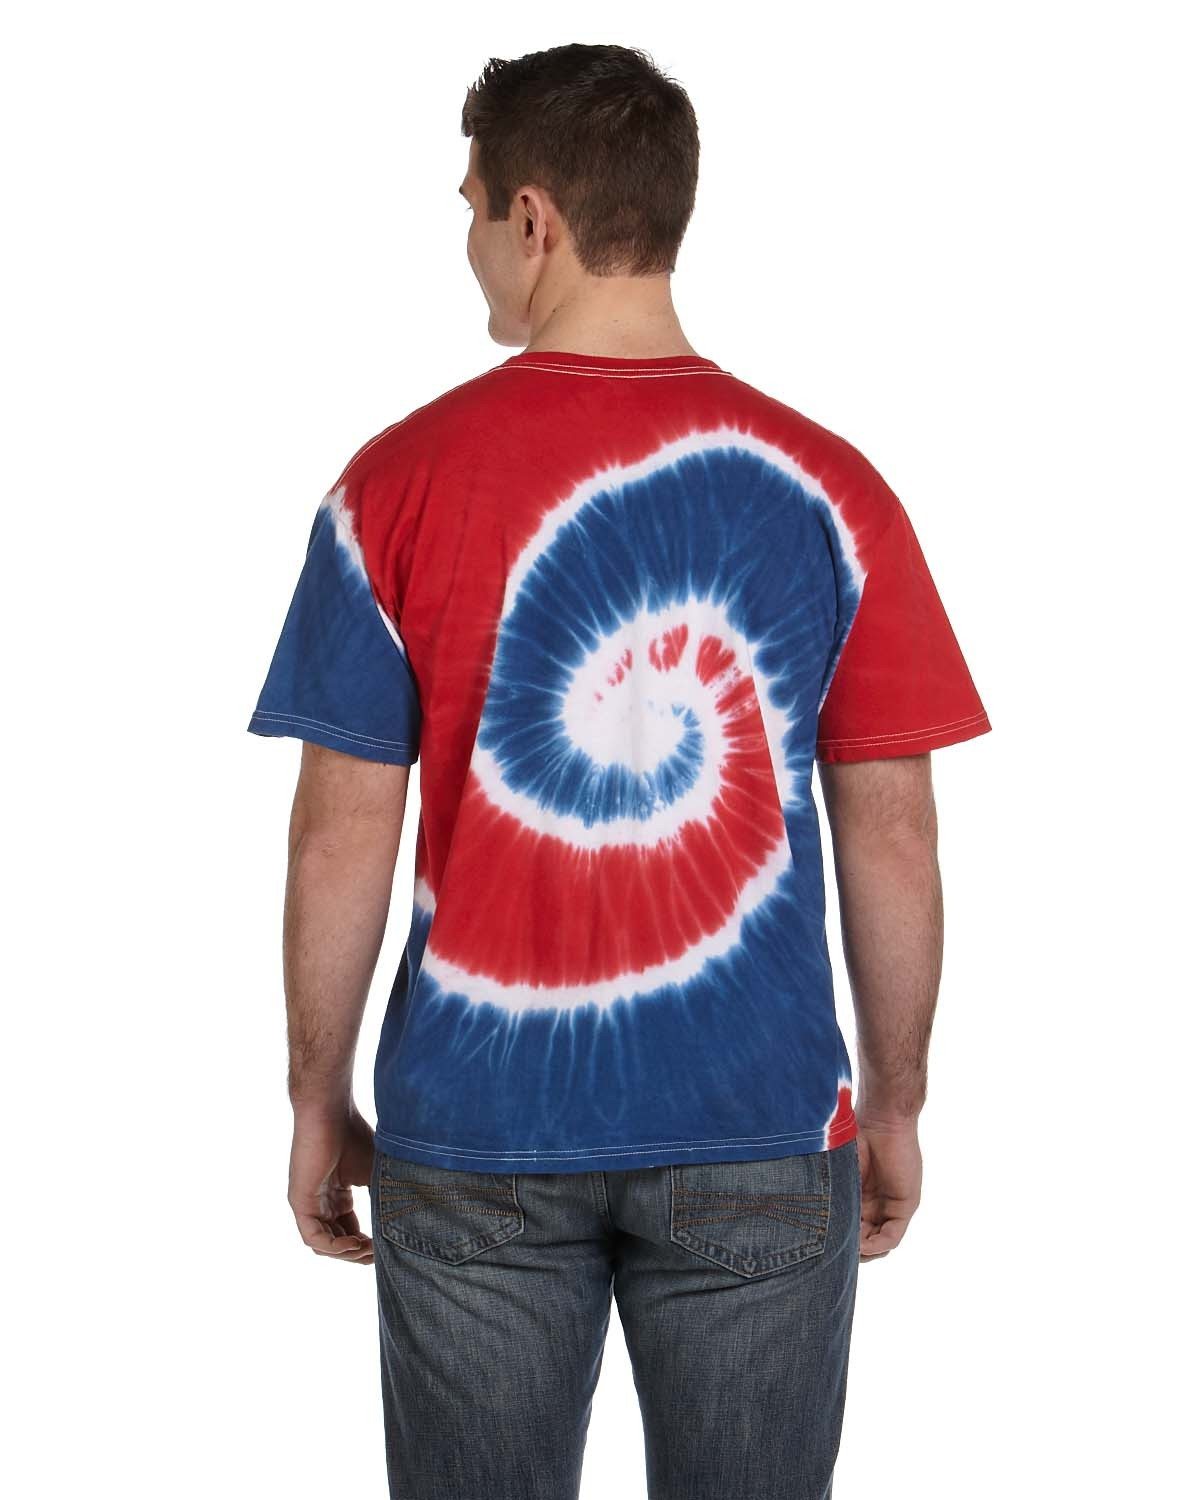 CD100 Tie-Dye SPIRAL ROY/RED